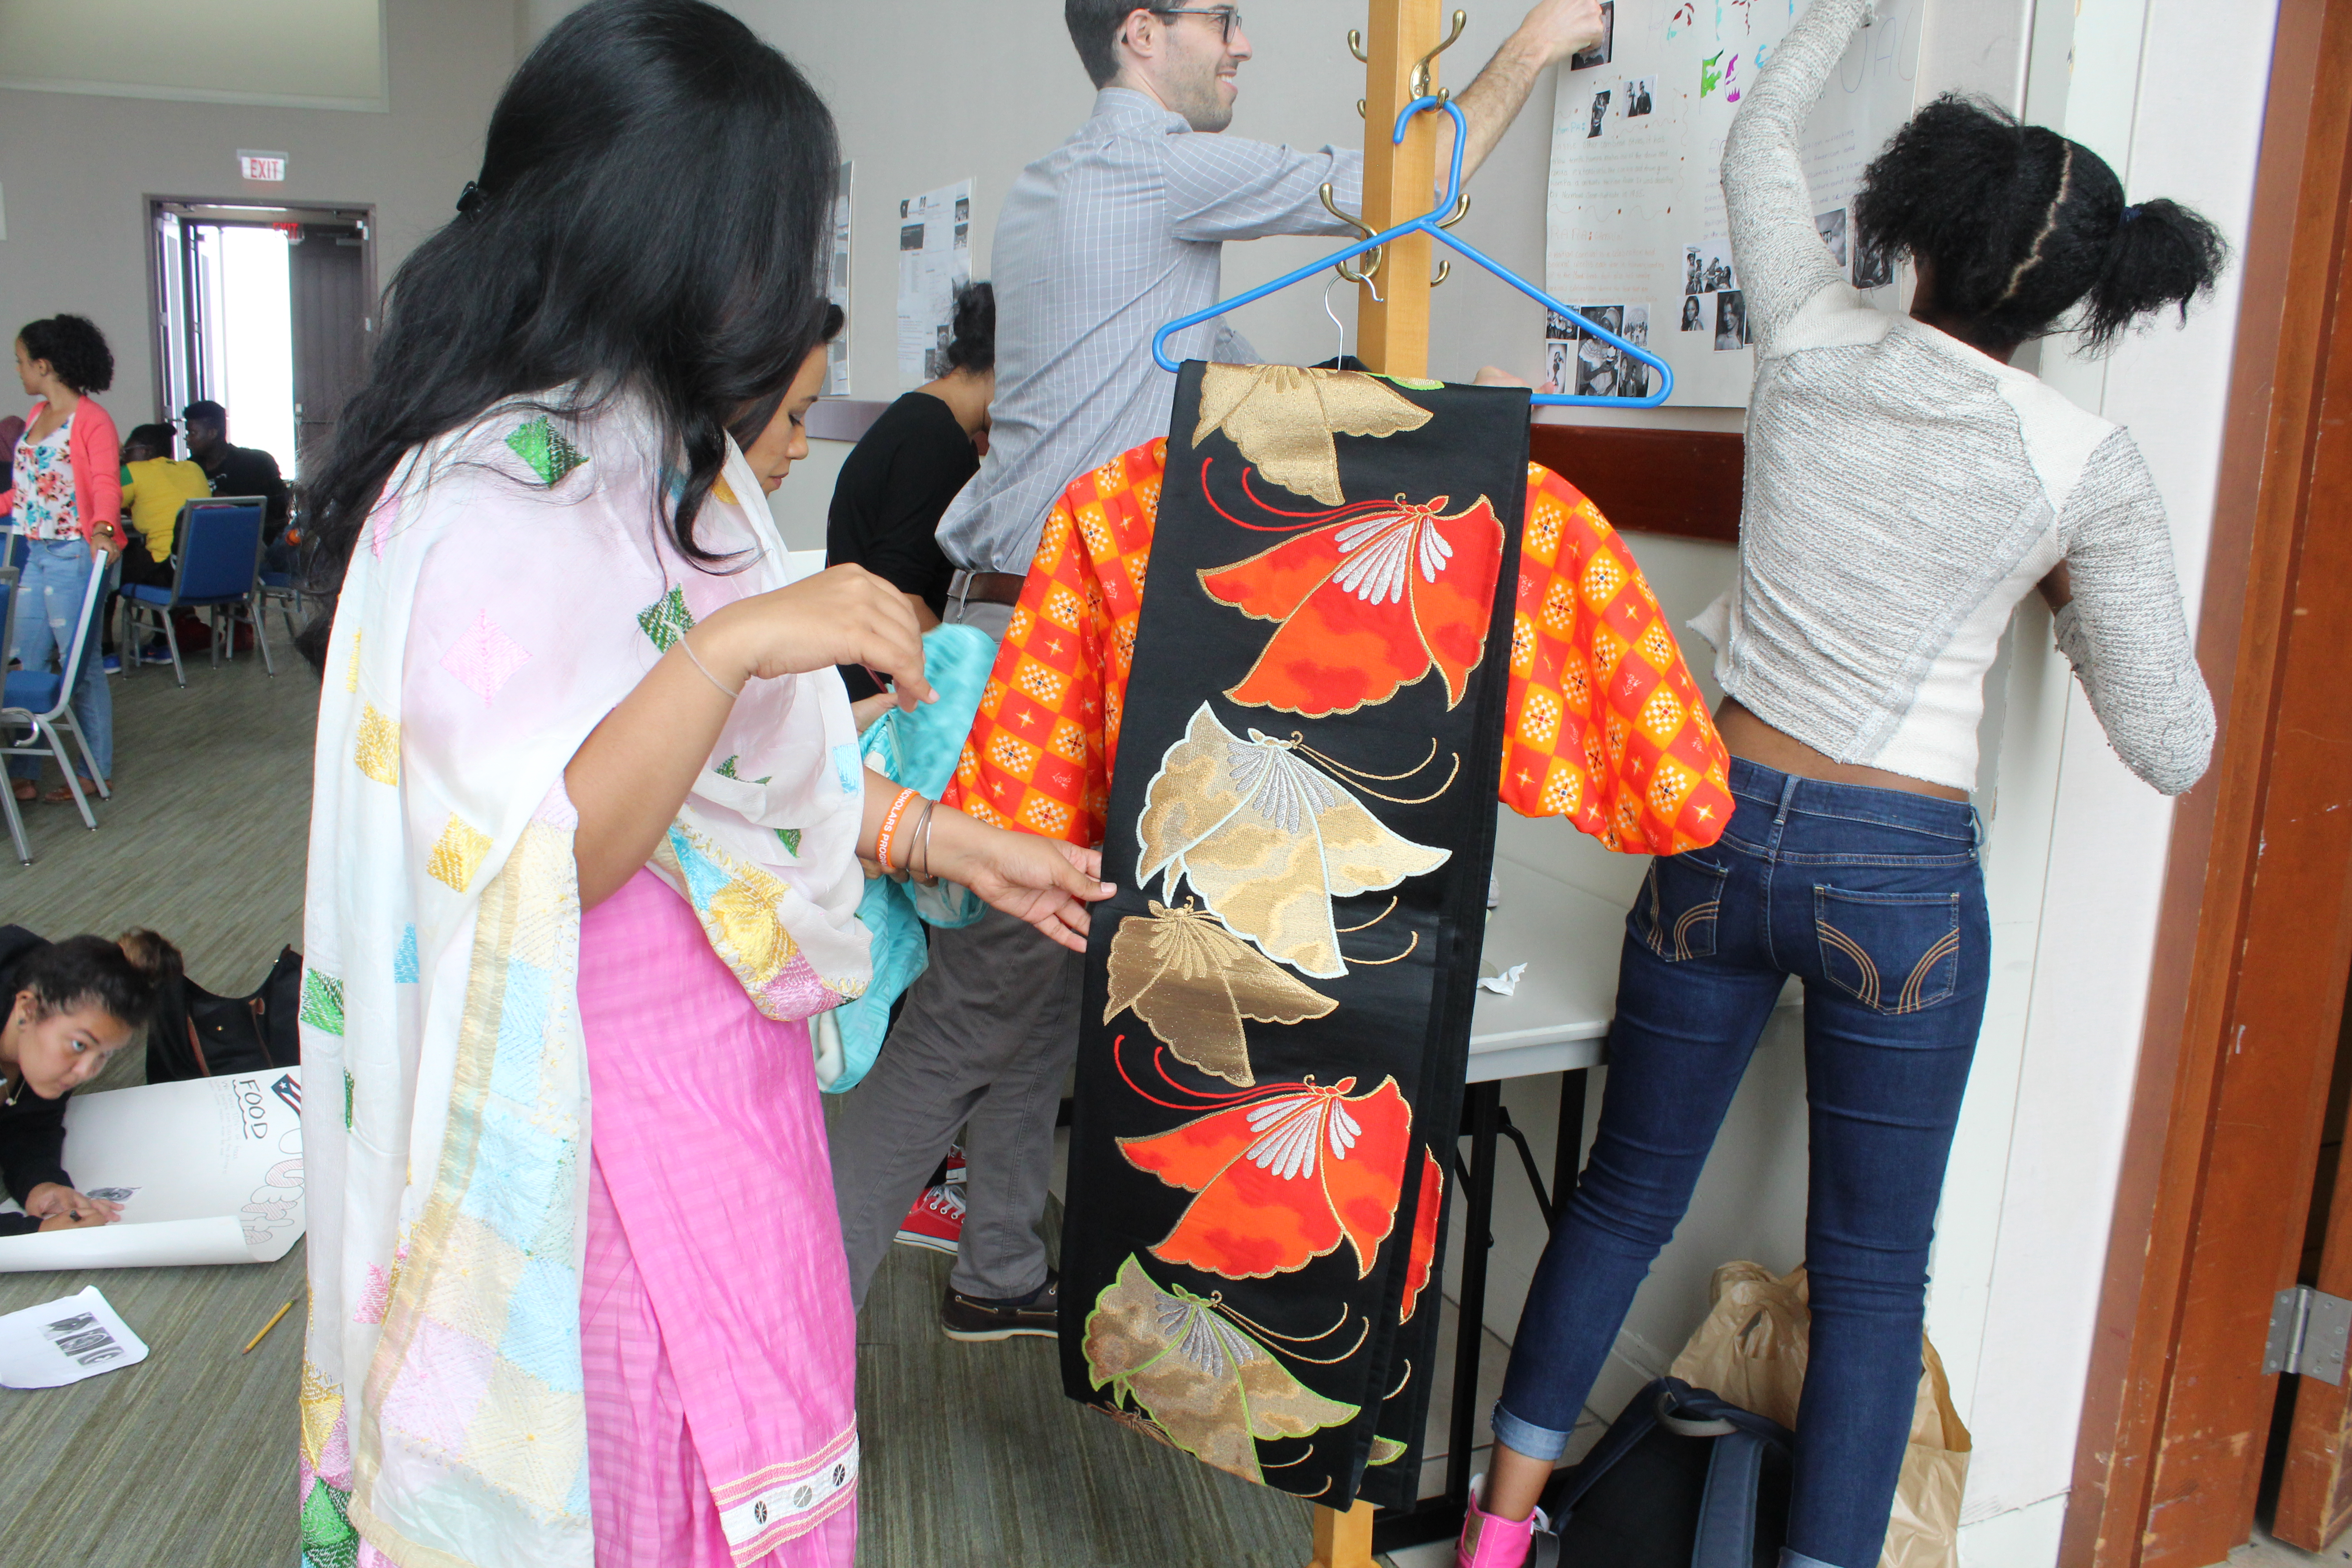 One of the staffs member looked at one of the clothes displayed of their tradition!